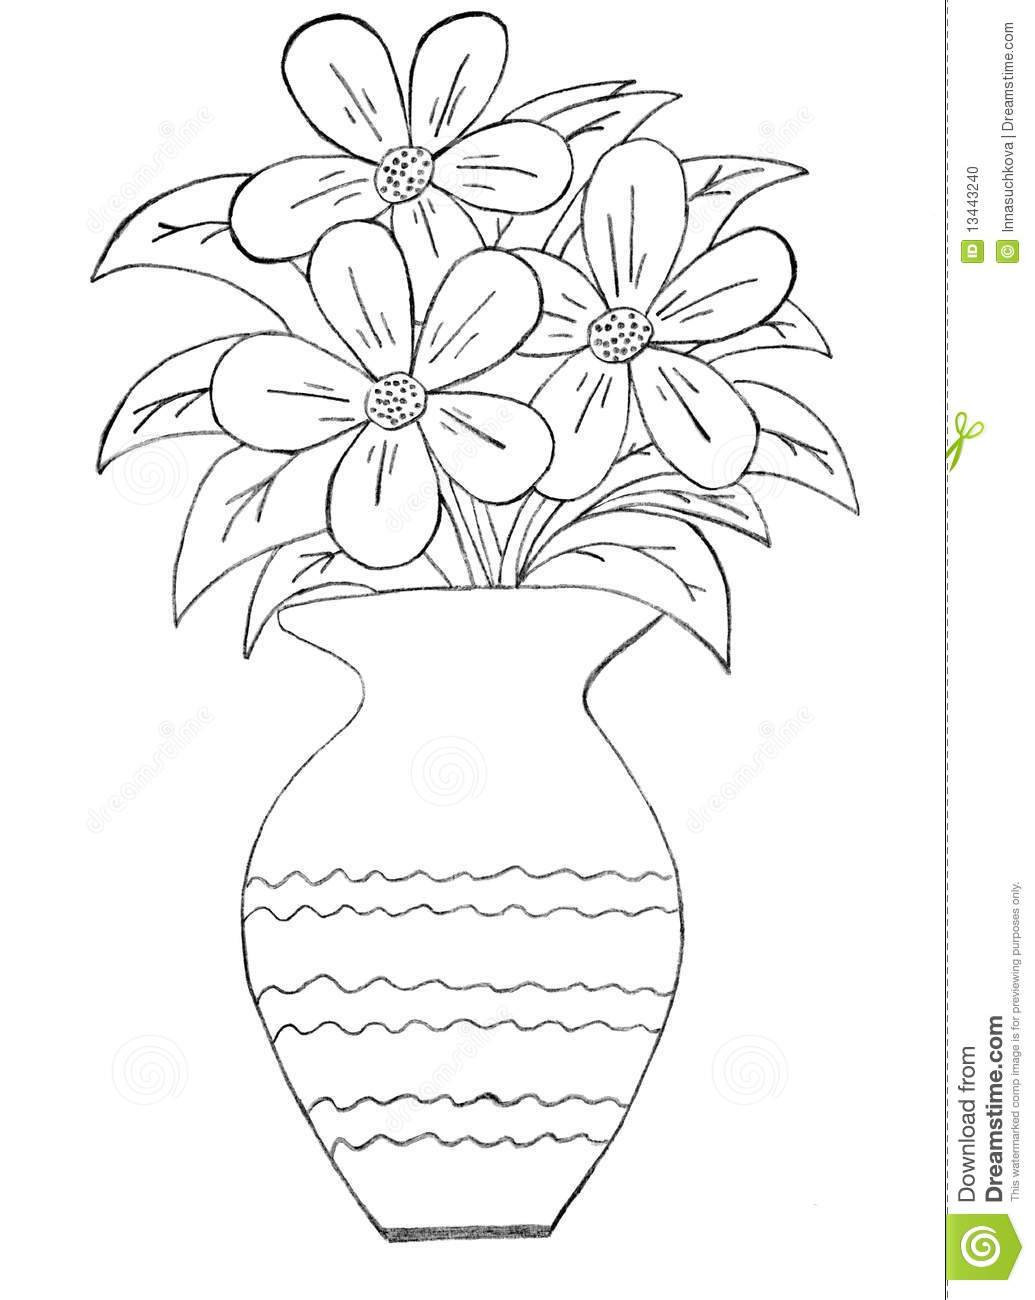 how to draw a bouquet of flowers in a vase 24 inspirational easy drawing of flower vase flower a bouquet flowers of a vase draw how in to